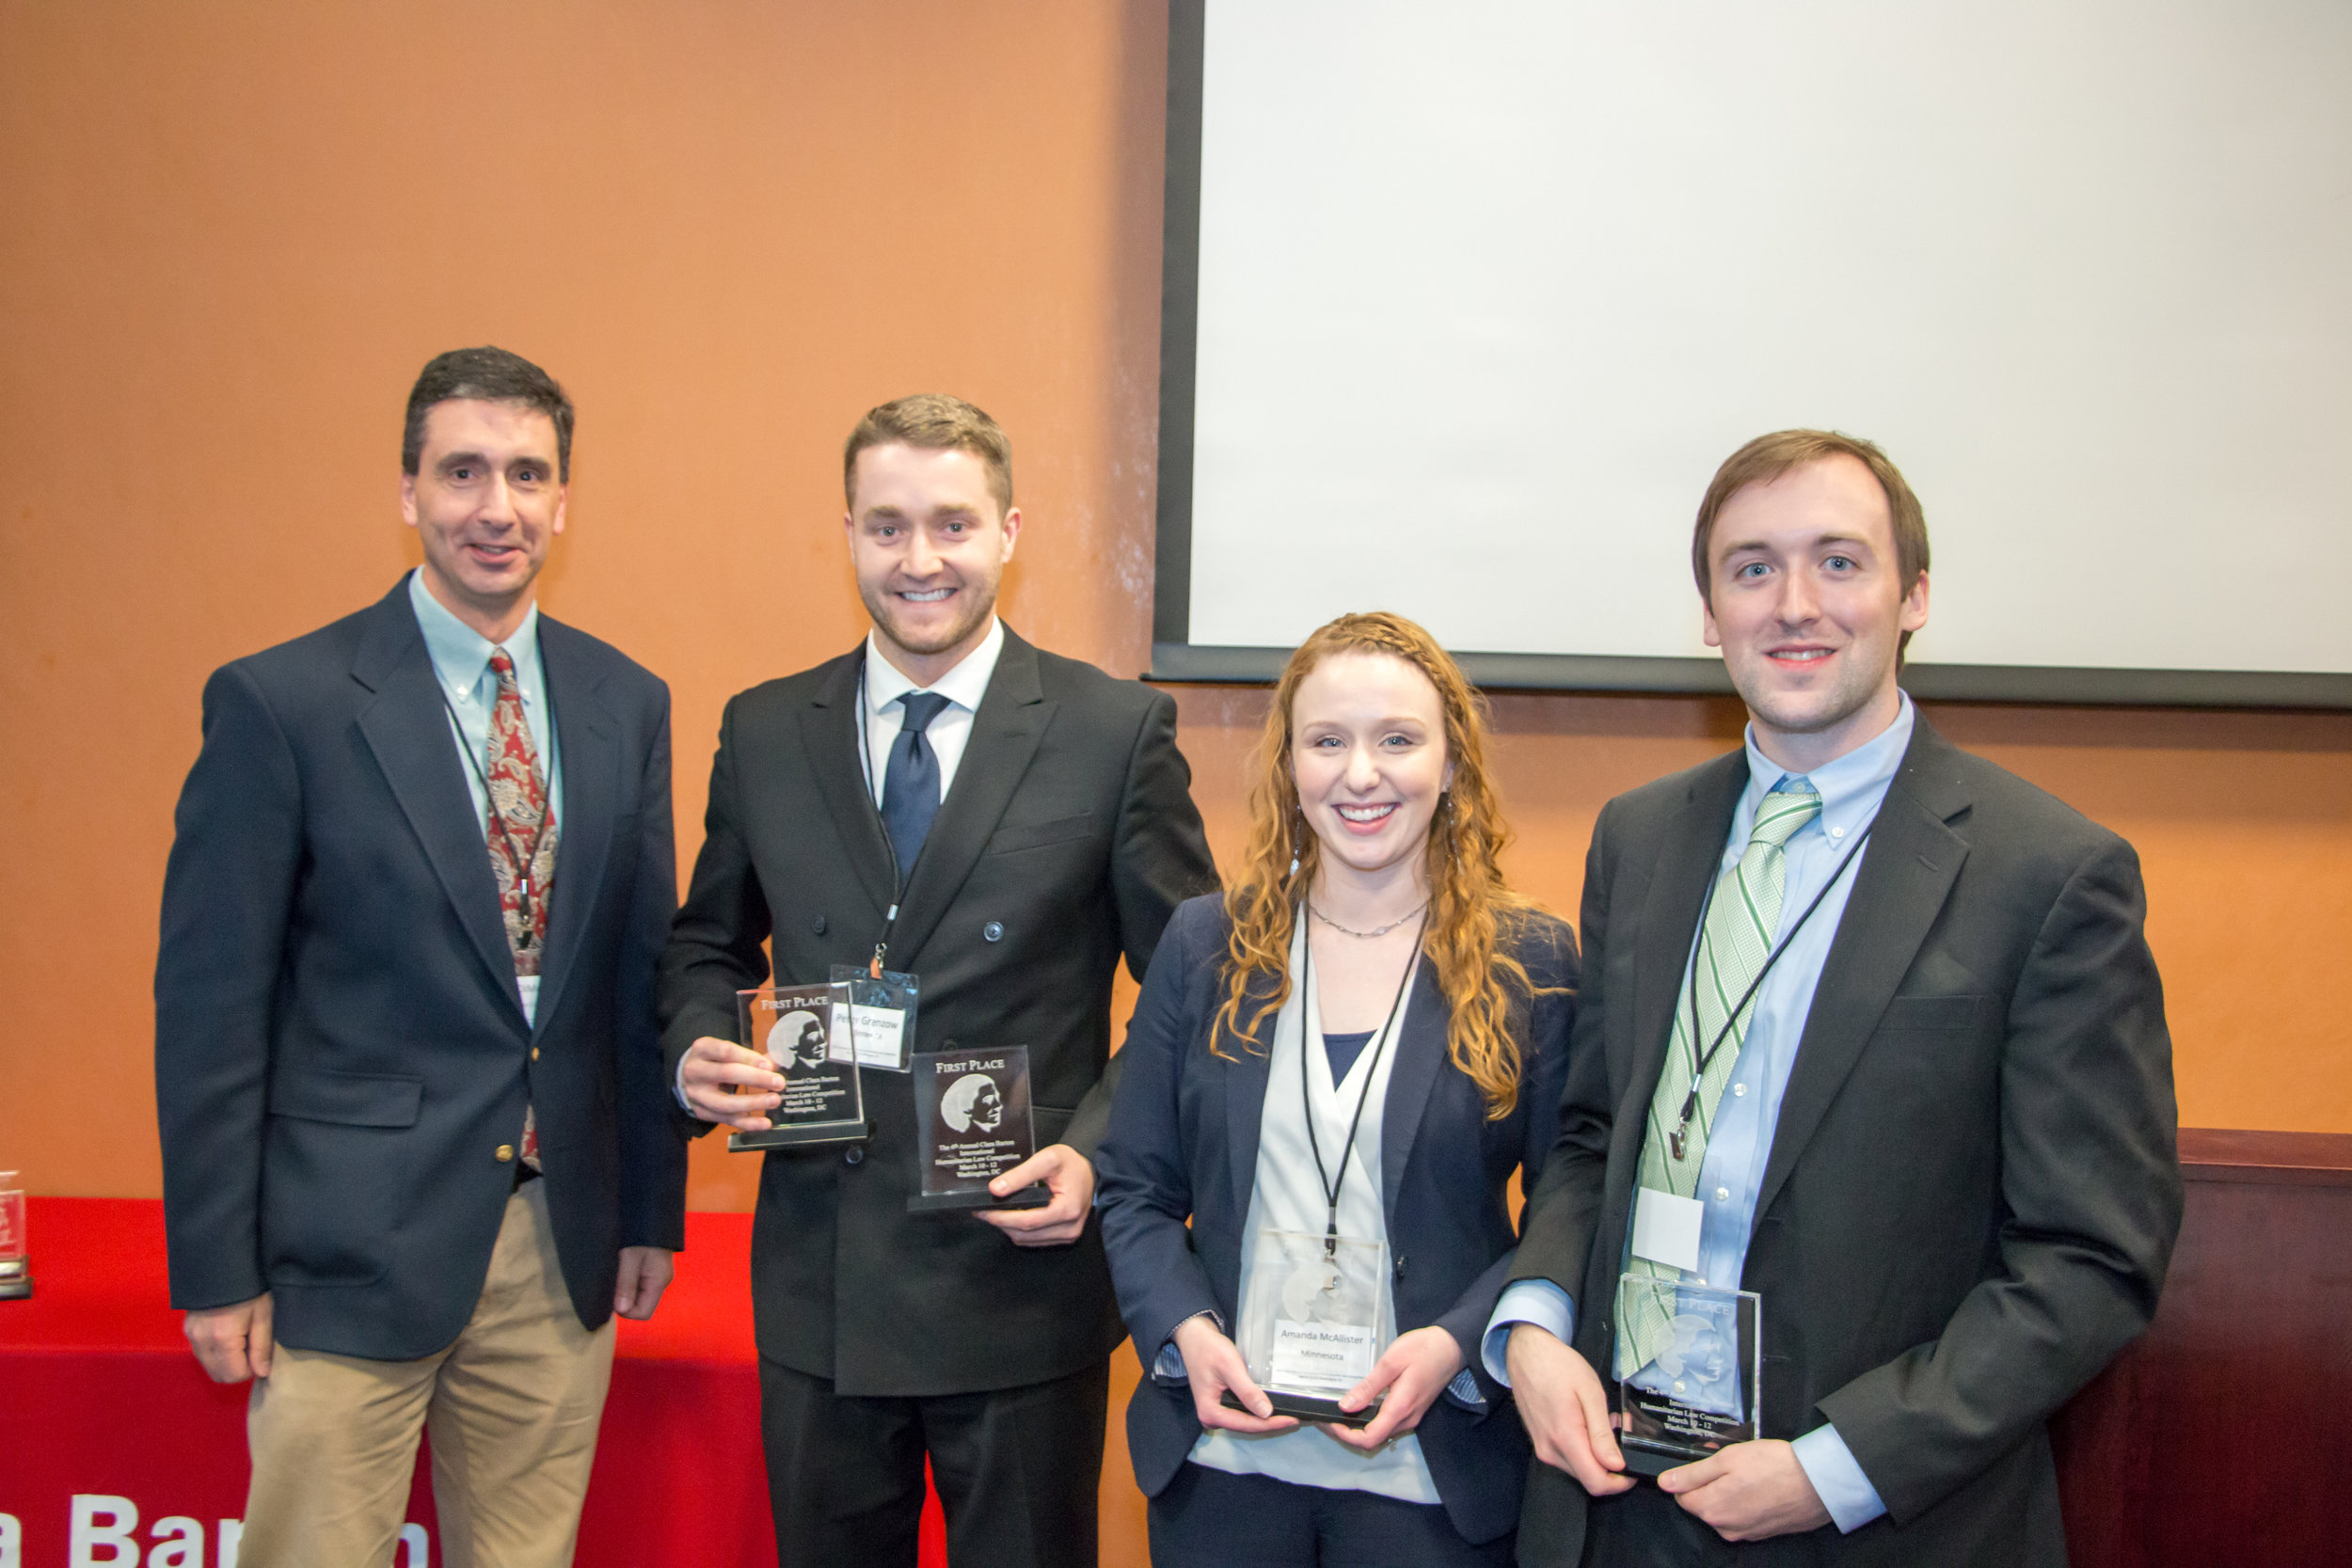 The first place team of the 4th Annual Clara Barton IHL Competition from the University of Minnesota Law School. Joe Gibson/American Red Cross